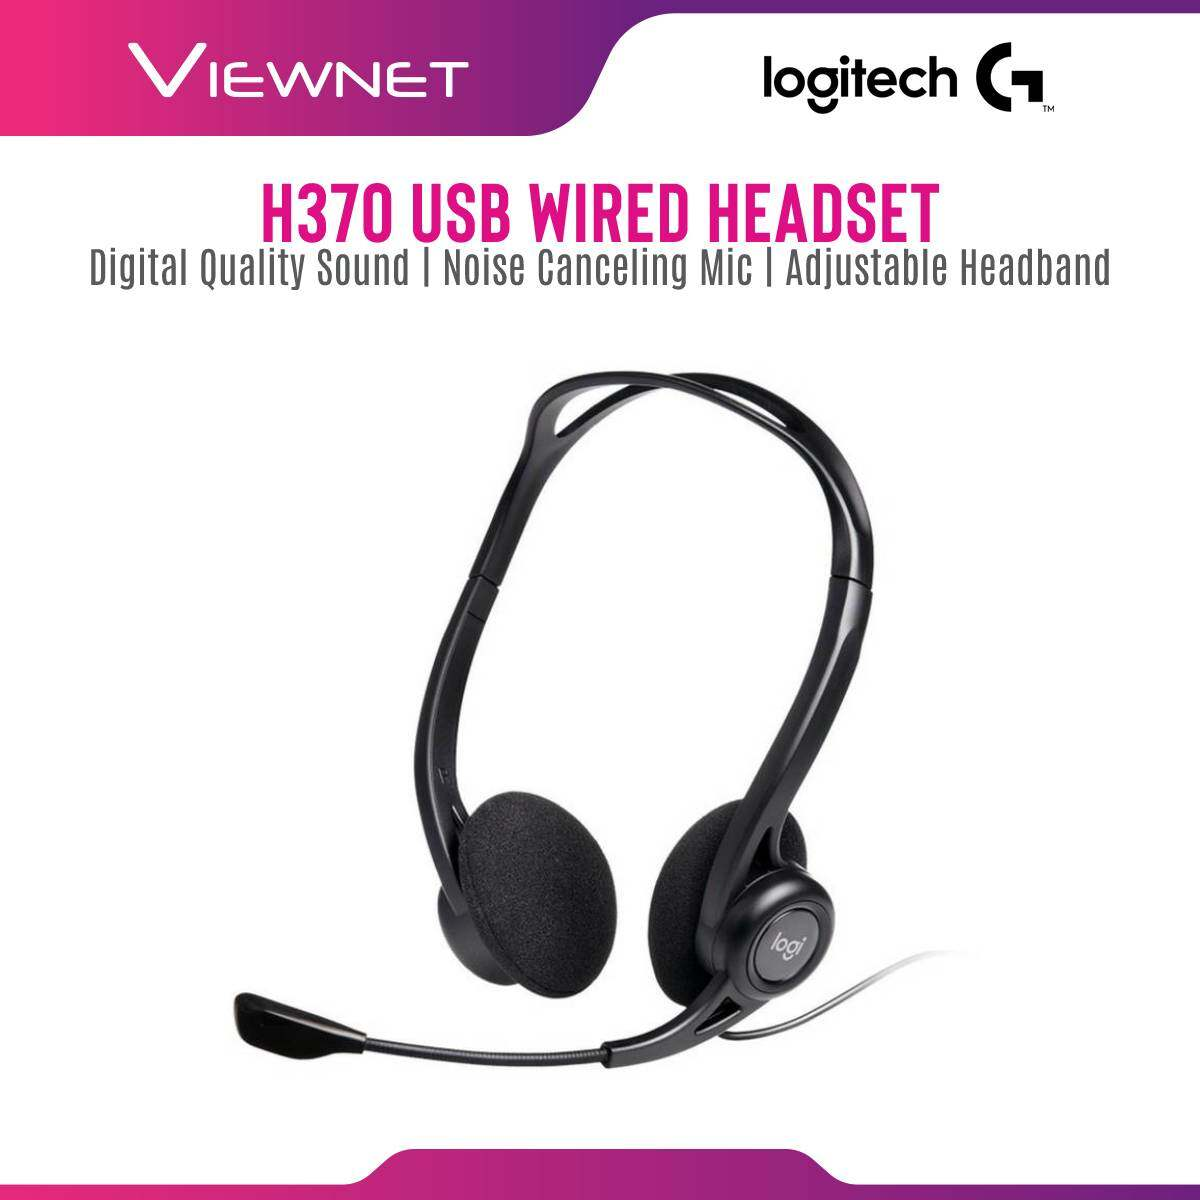 Logitech USB Wired Headset H370 with Digital Quality Sound, Noise Canceling Mic, In-Line Controls, Adjustable Headband